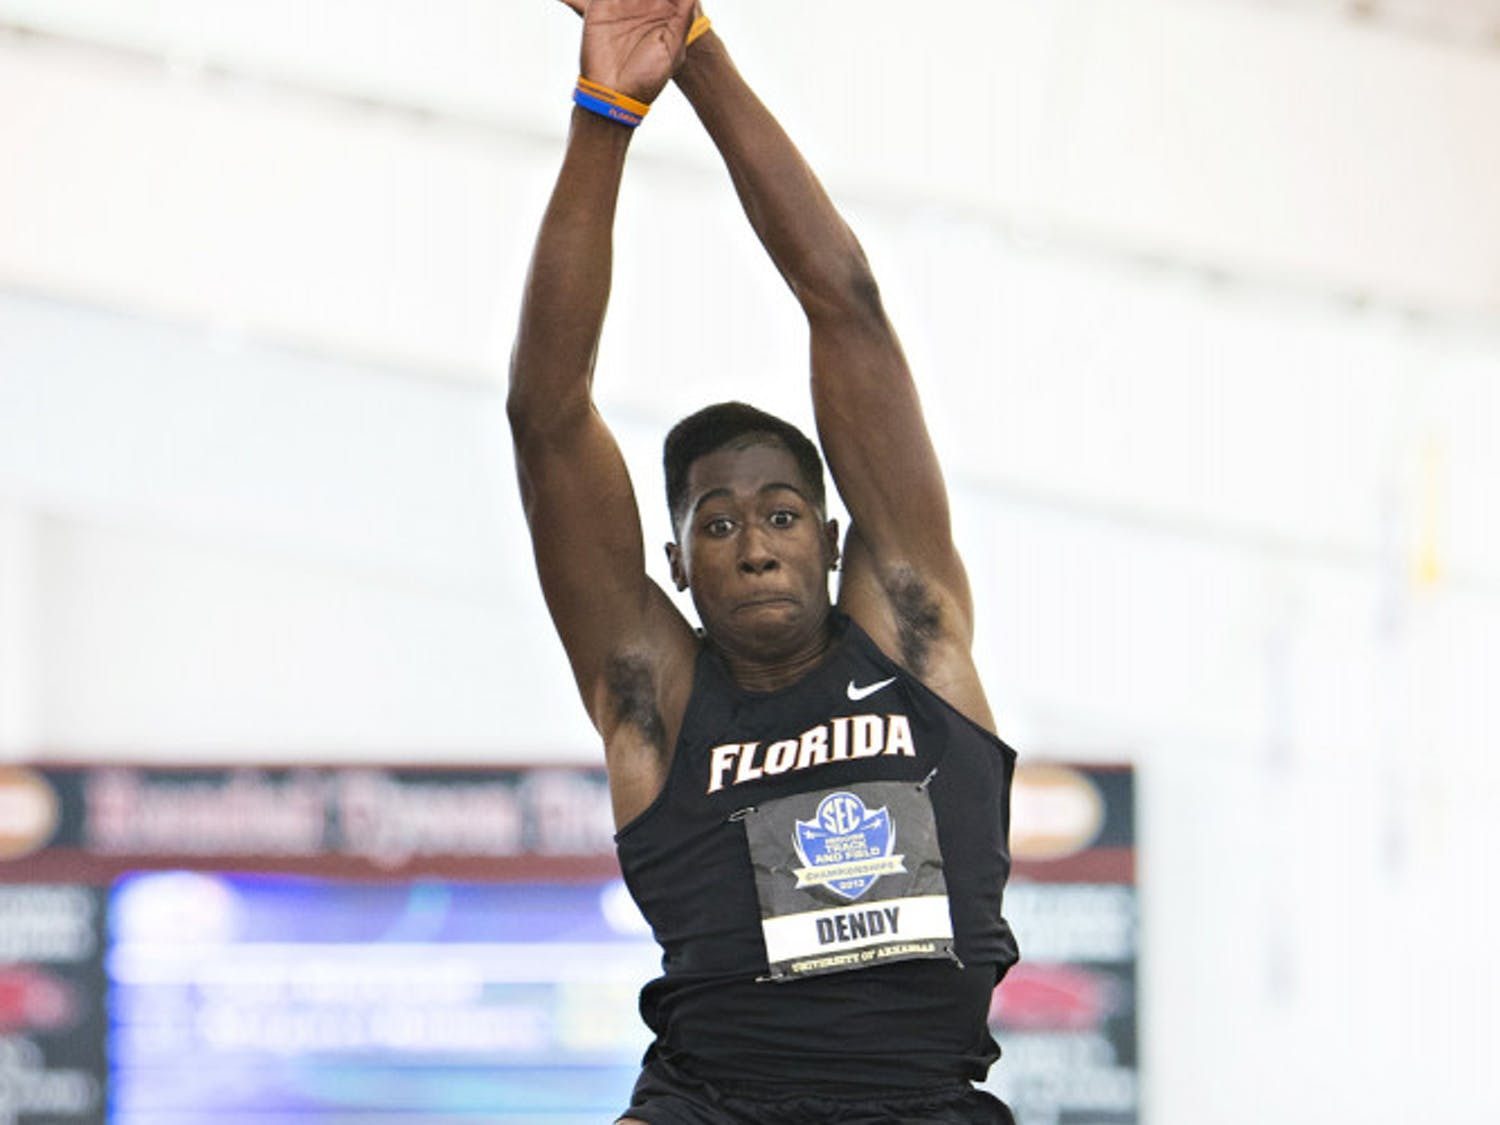 Sophomore jumper Marquis Dendy competes in the long jump at the SEC Indoor Track Championships on Feb. 23 in Fayetteville, Ark. Dendy qualified for the men's triple jump in next week's NCAA Outdoors Championships.